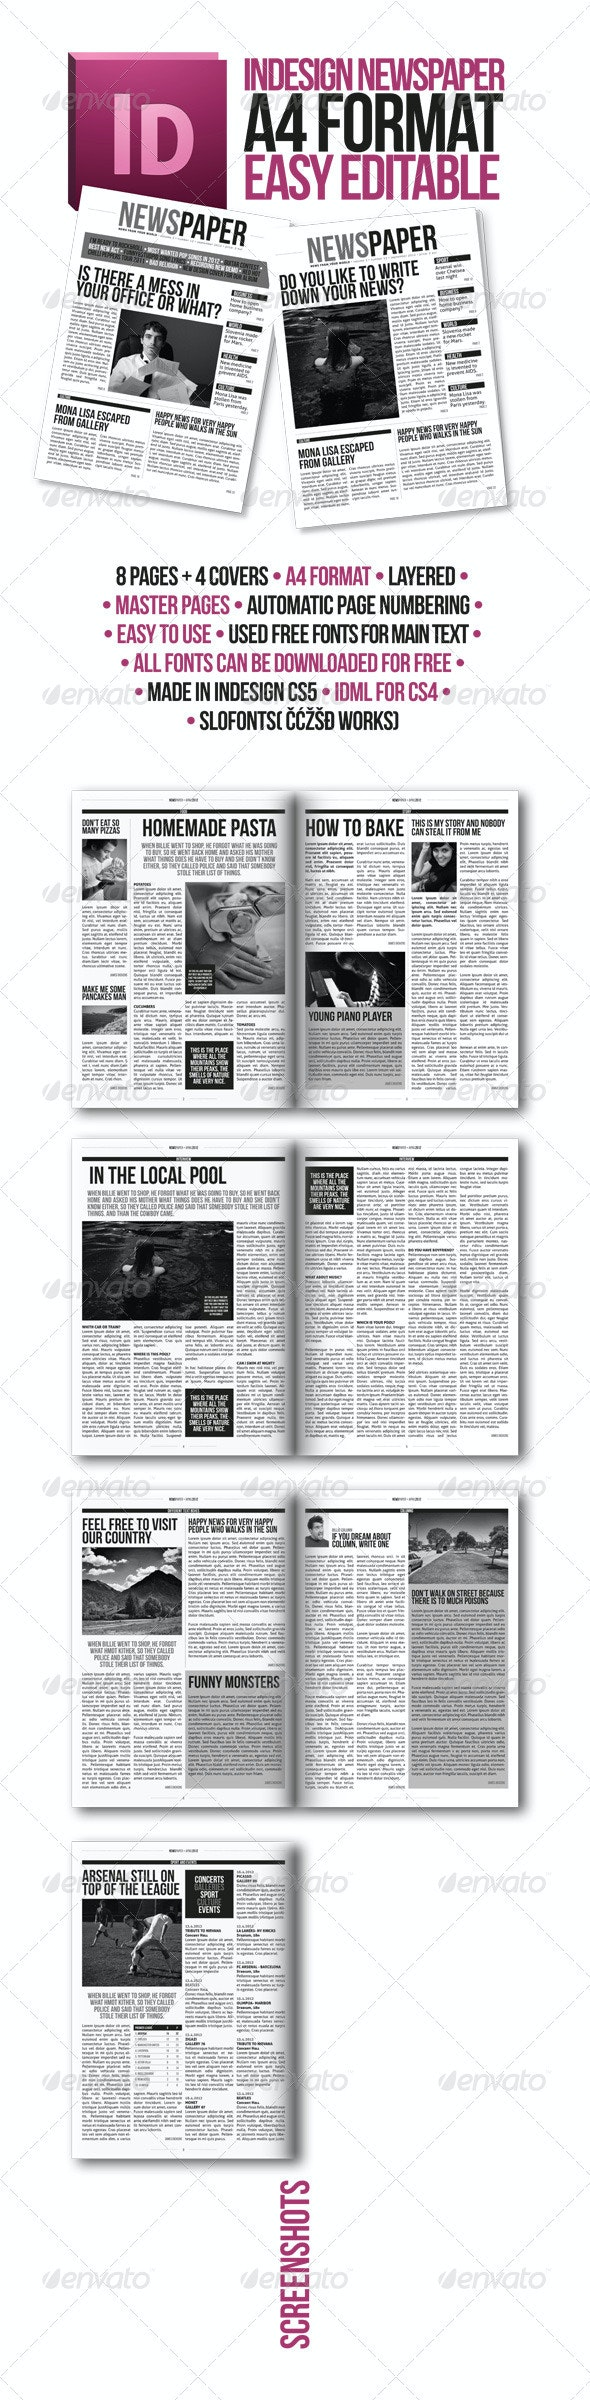 Indesign Modern Newspaper Magazine Template A4 - Newsletters Print Templates